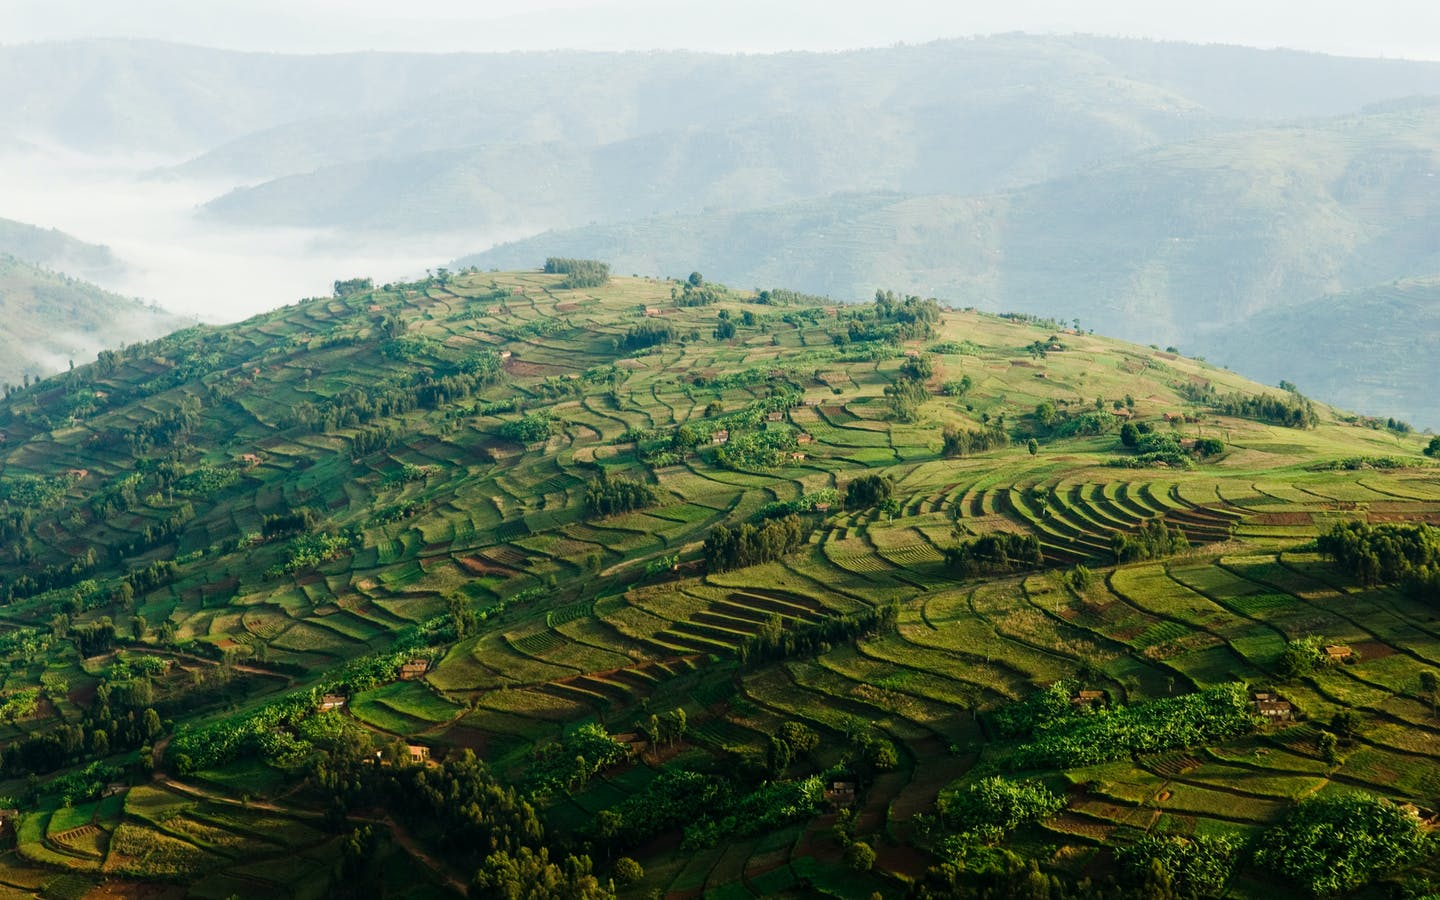 Aerial view of agricultural fields on a mountain.